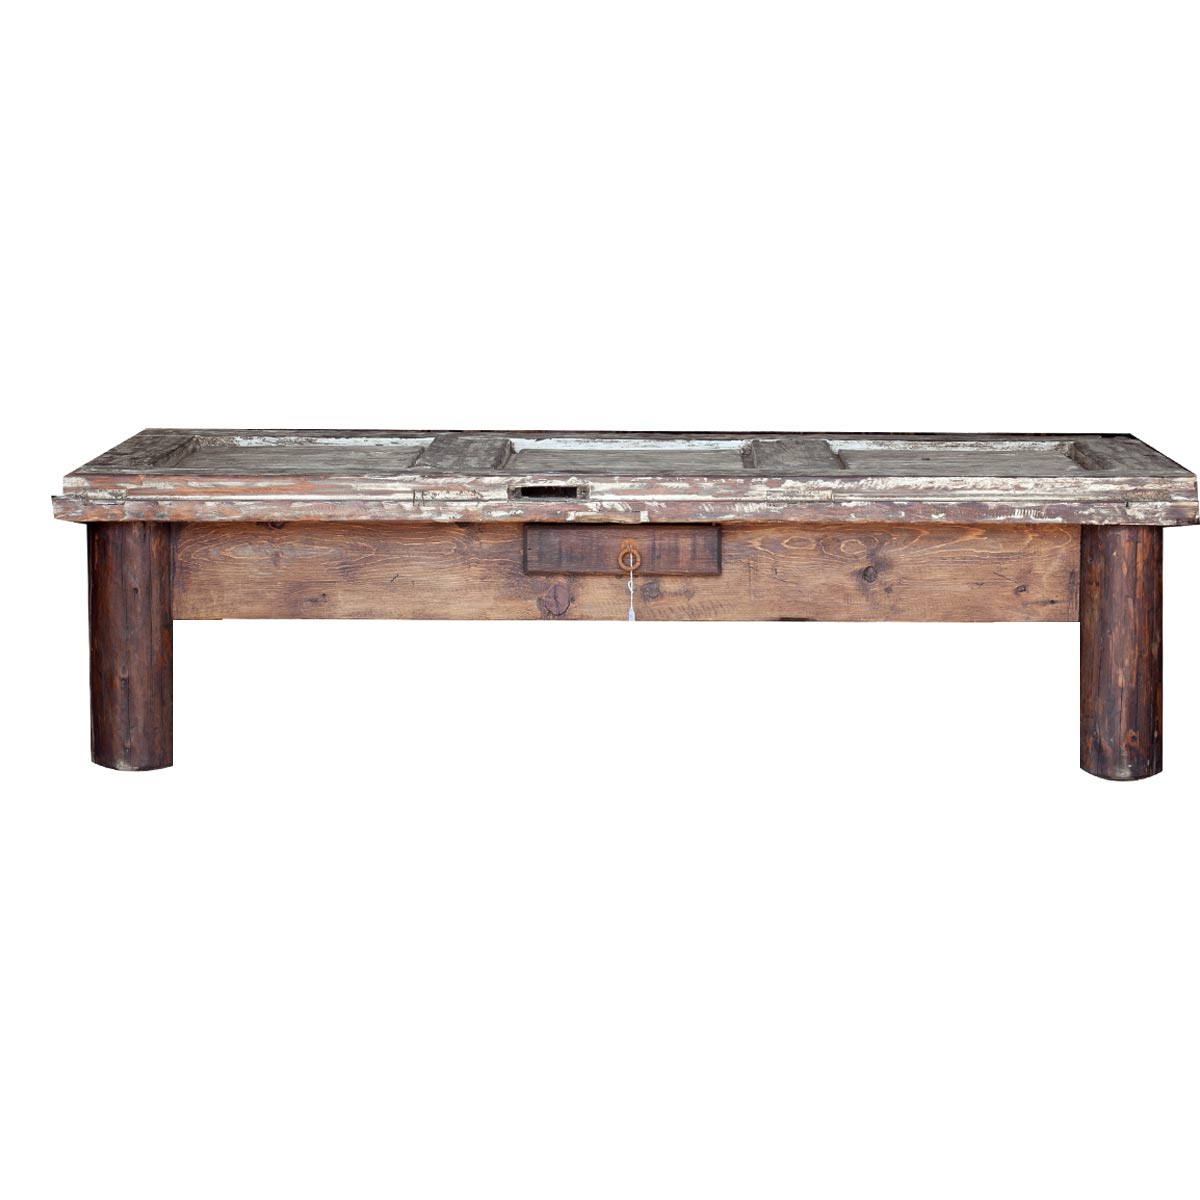 Image of: Rustic Mexican Coffee Table